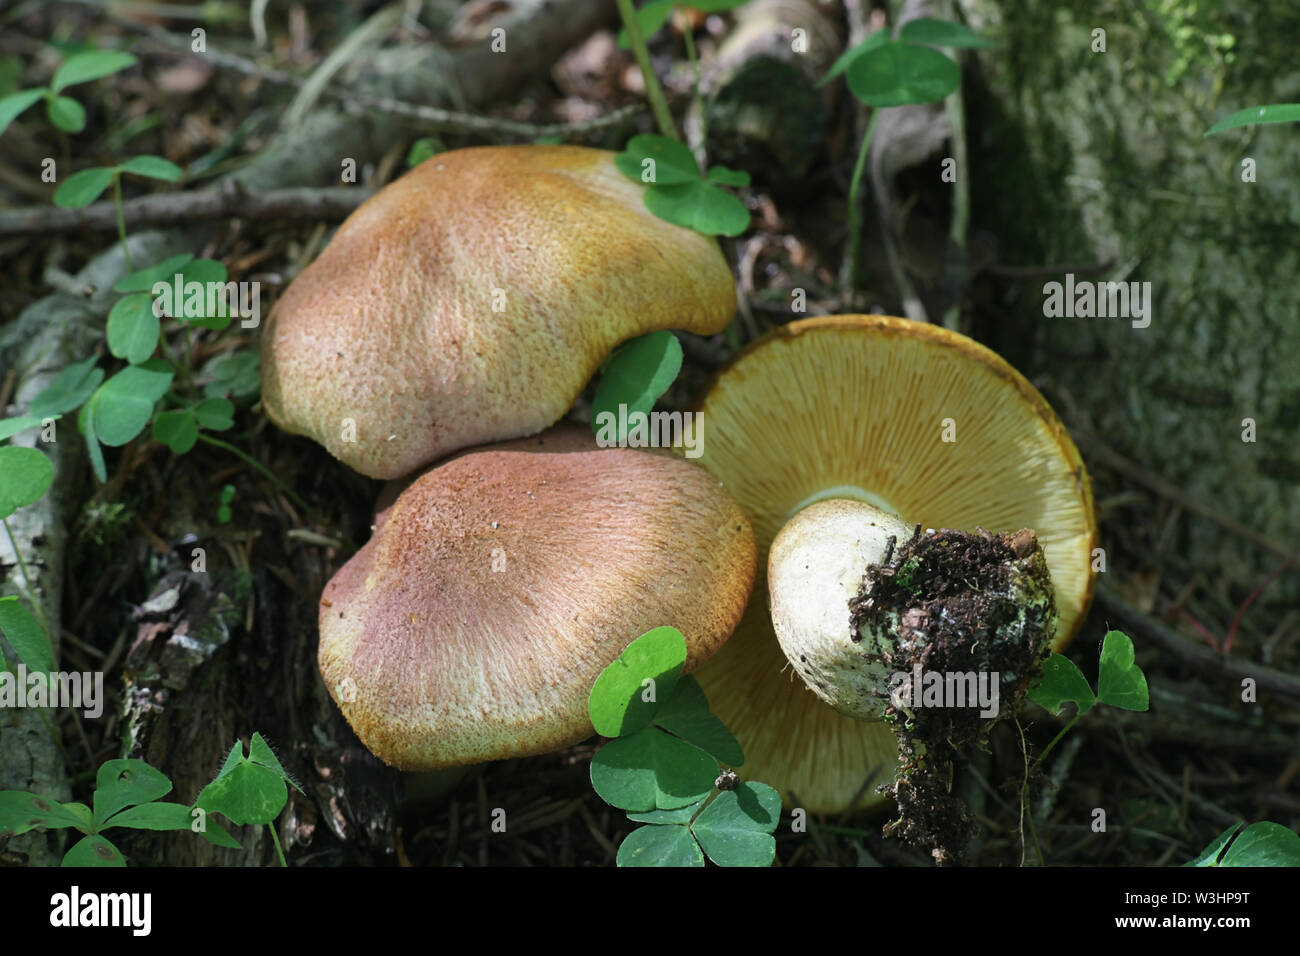 Tricholomopsis rutilans, known as the Plums and Custard mushroom or Red-haired agaric - Stock Image